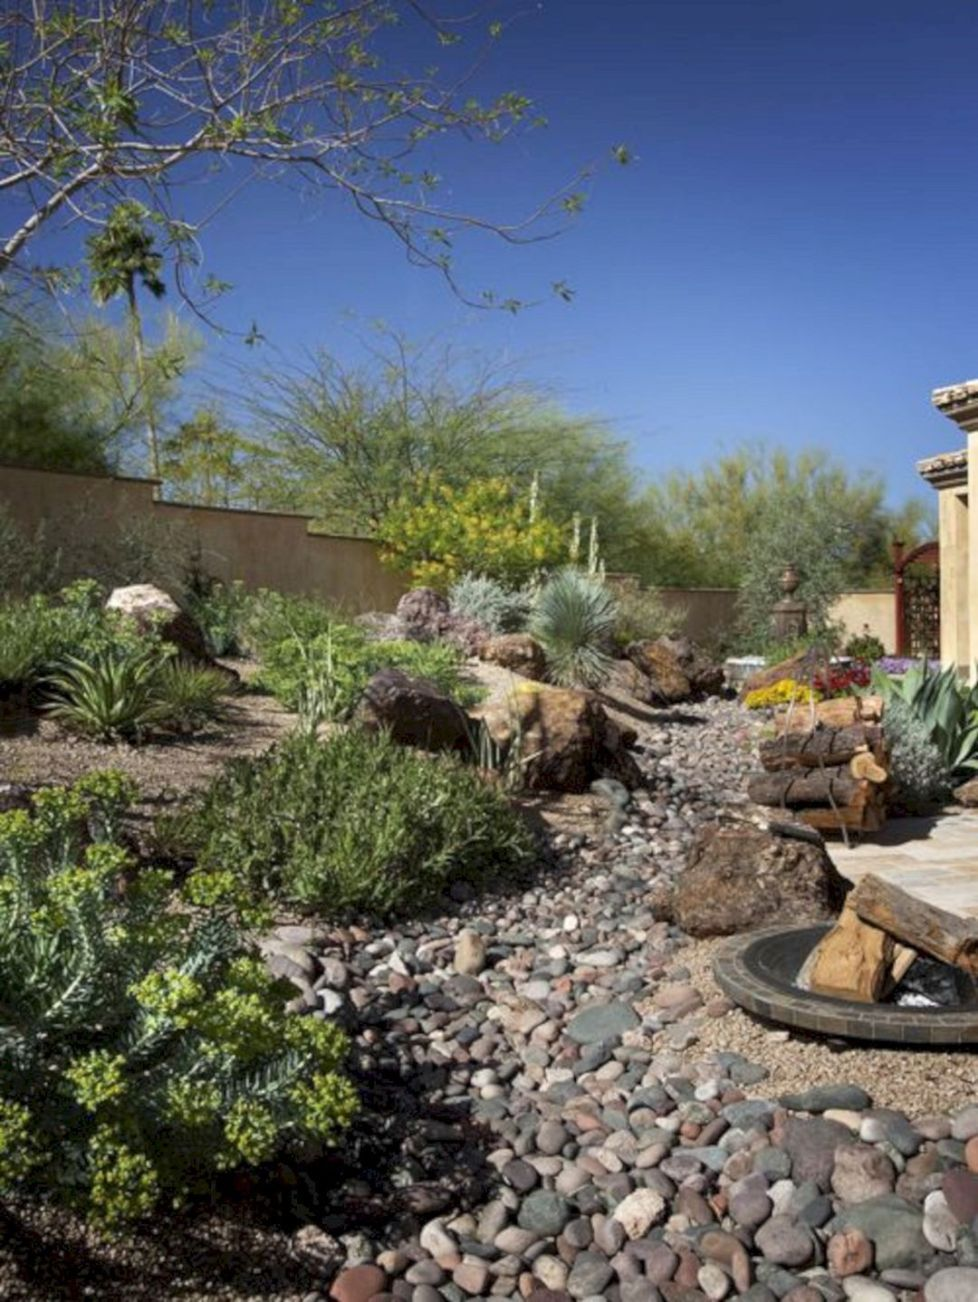 32 Stunning Low Water Landscaping Ideas For Your Garden: 25+ Top Arizona Backyard Landscaping Ideas That Will Enhance Your Garden Beauty